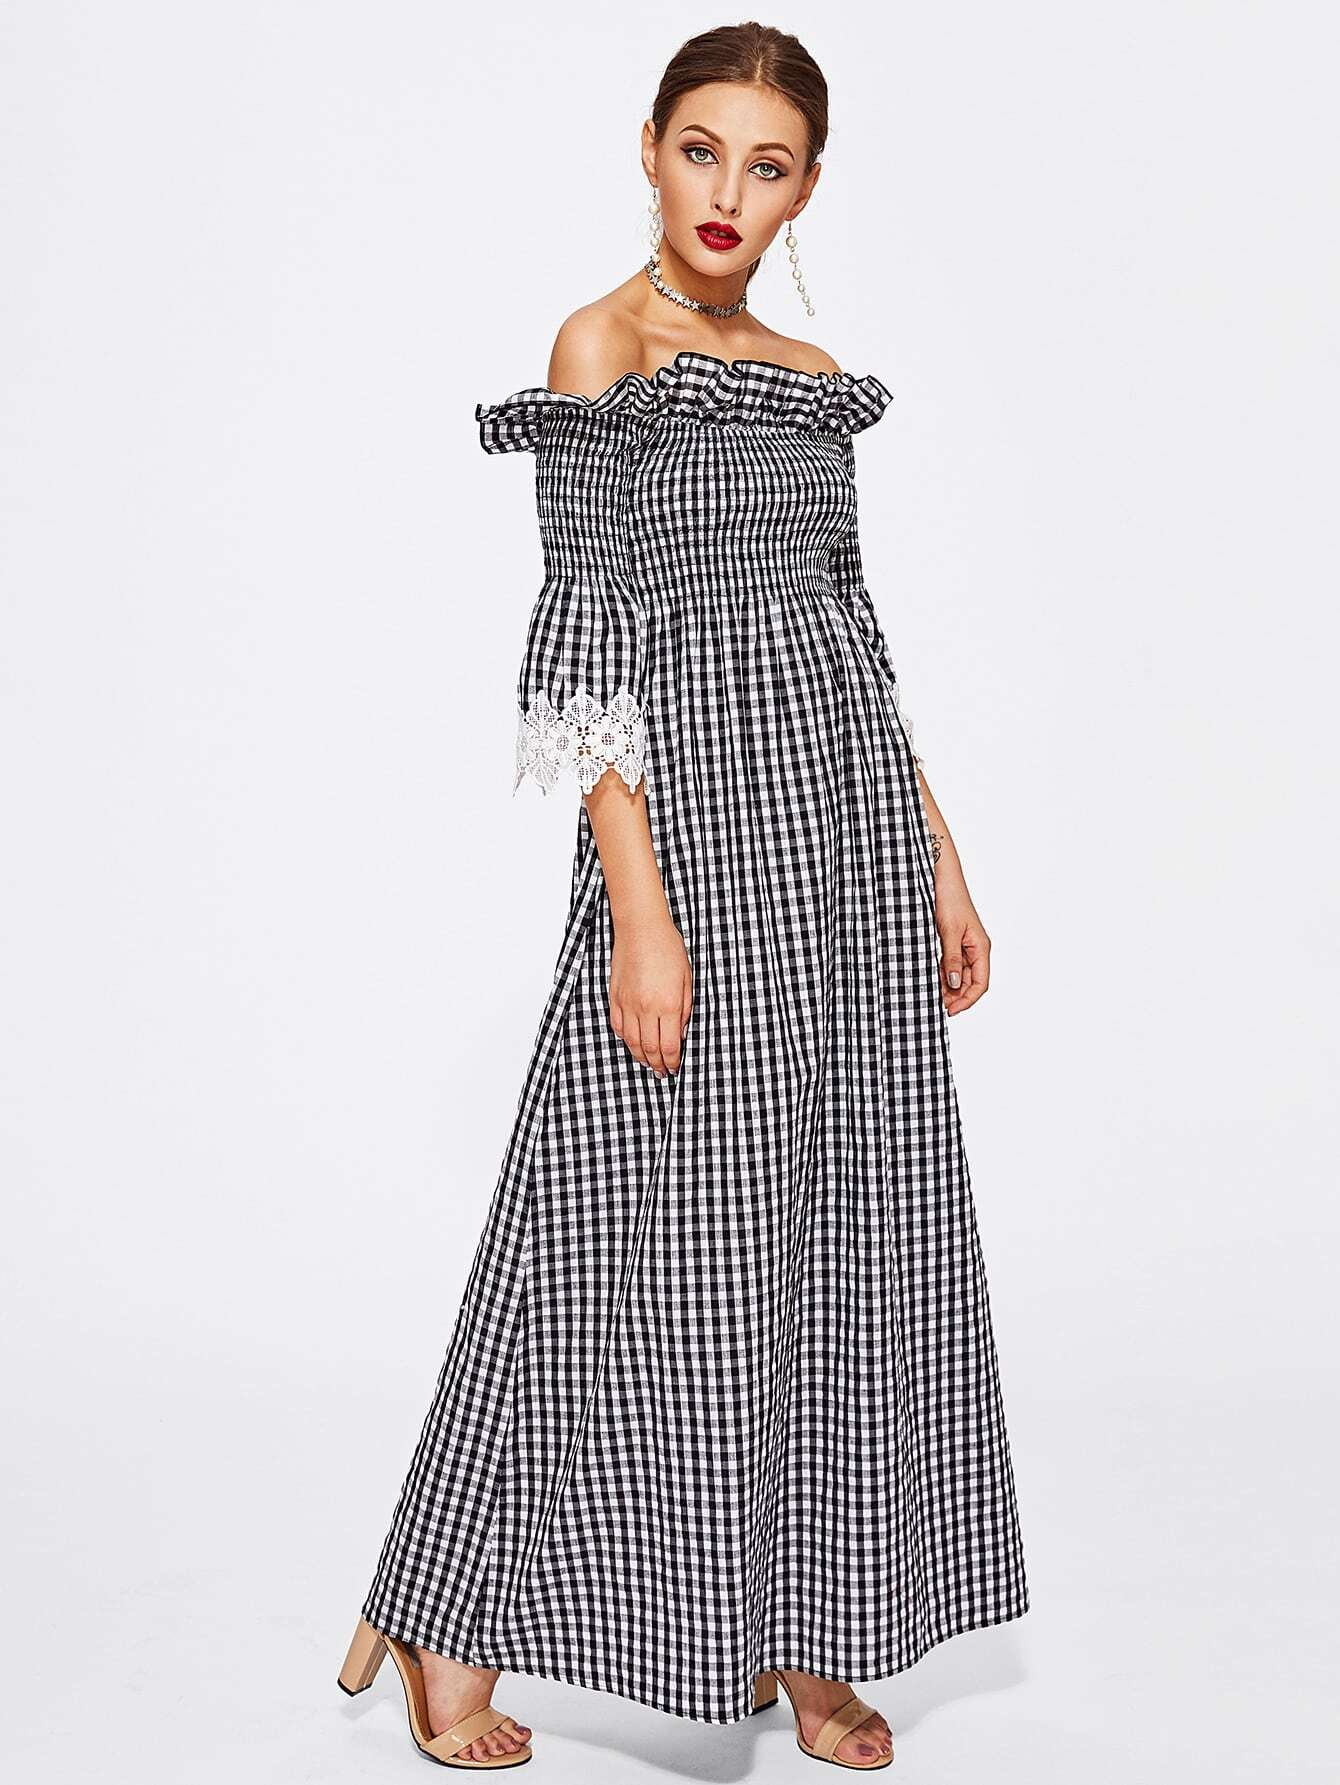 Contrast Lace Cuff Frill Detail Smocked Gingham Dress